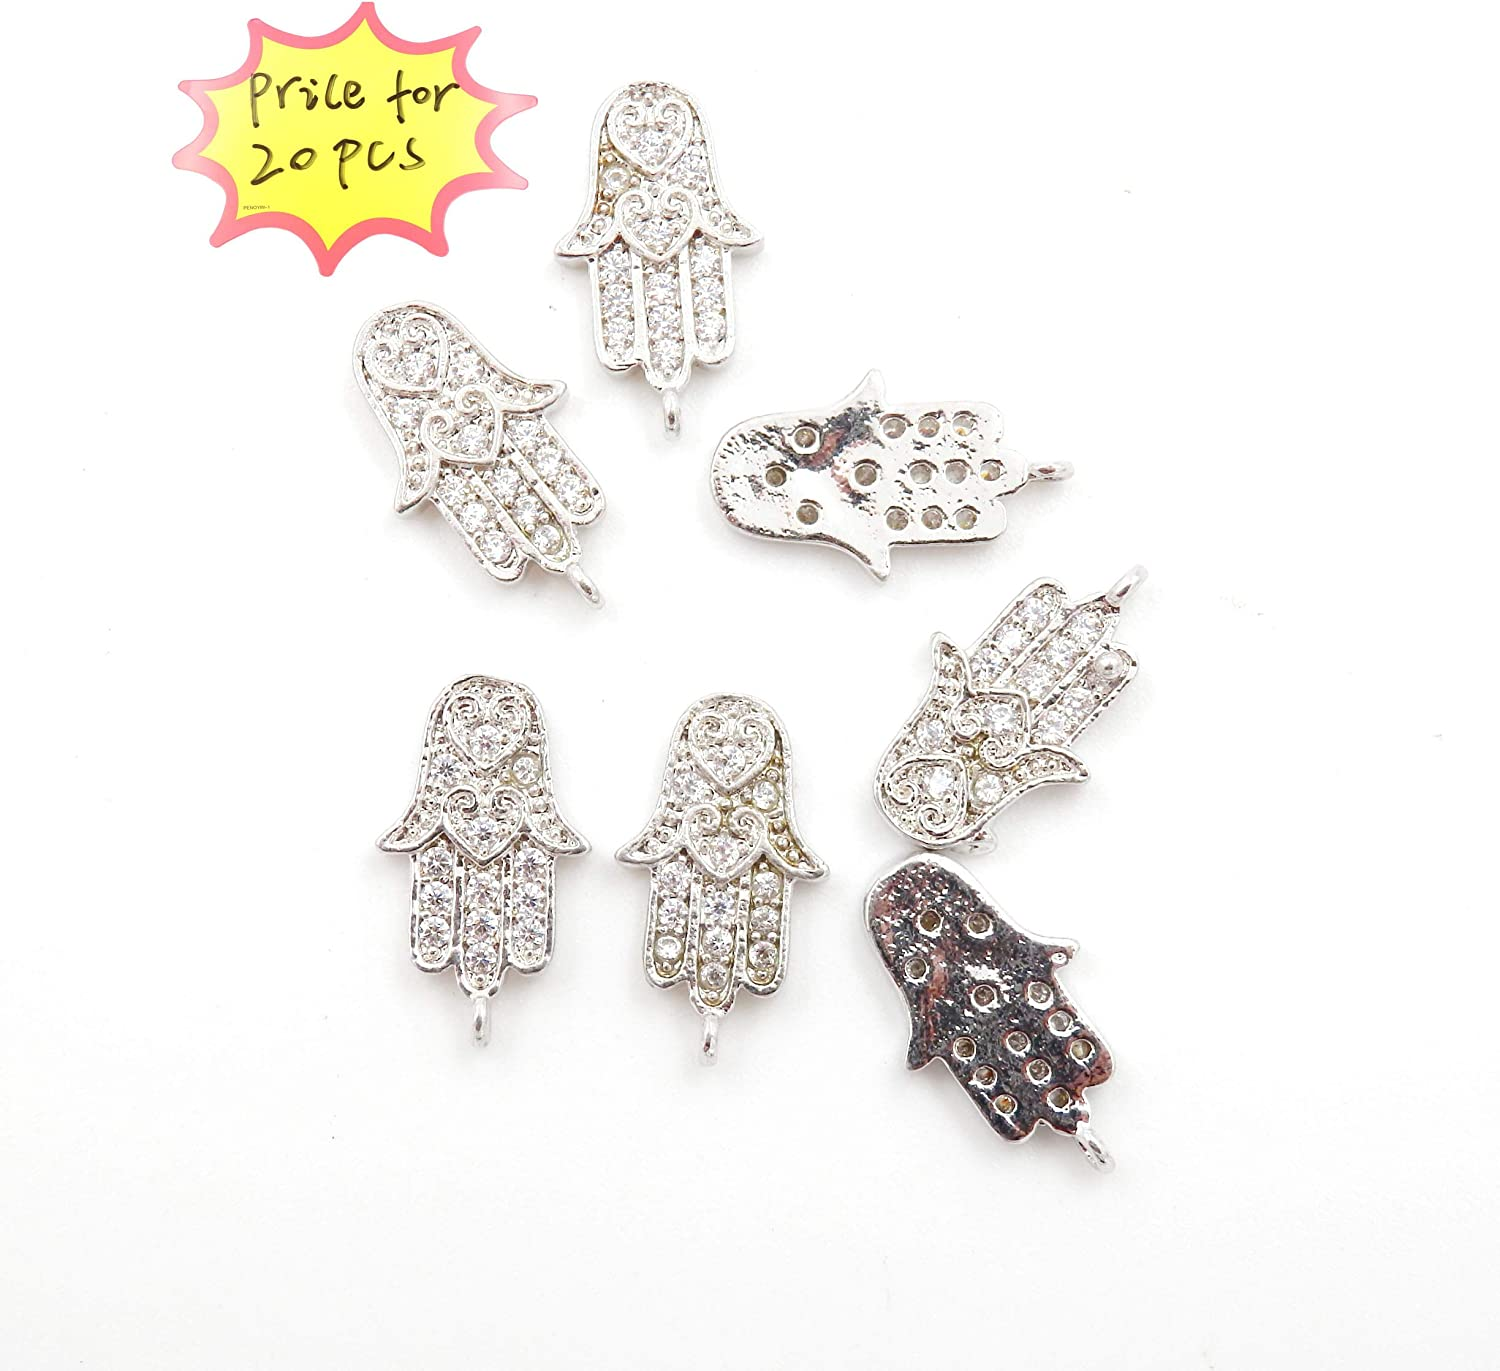 Charm Gold Zircon Crystal Earrings Pendant Connector Craft DIY Earring Bracelet Necklace Jewelry Making